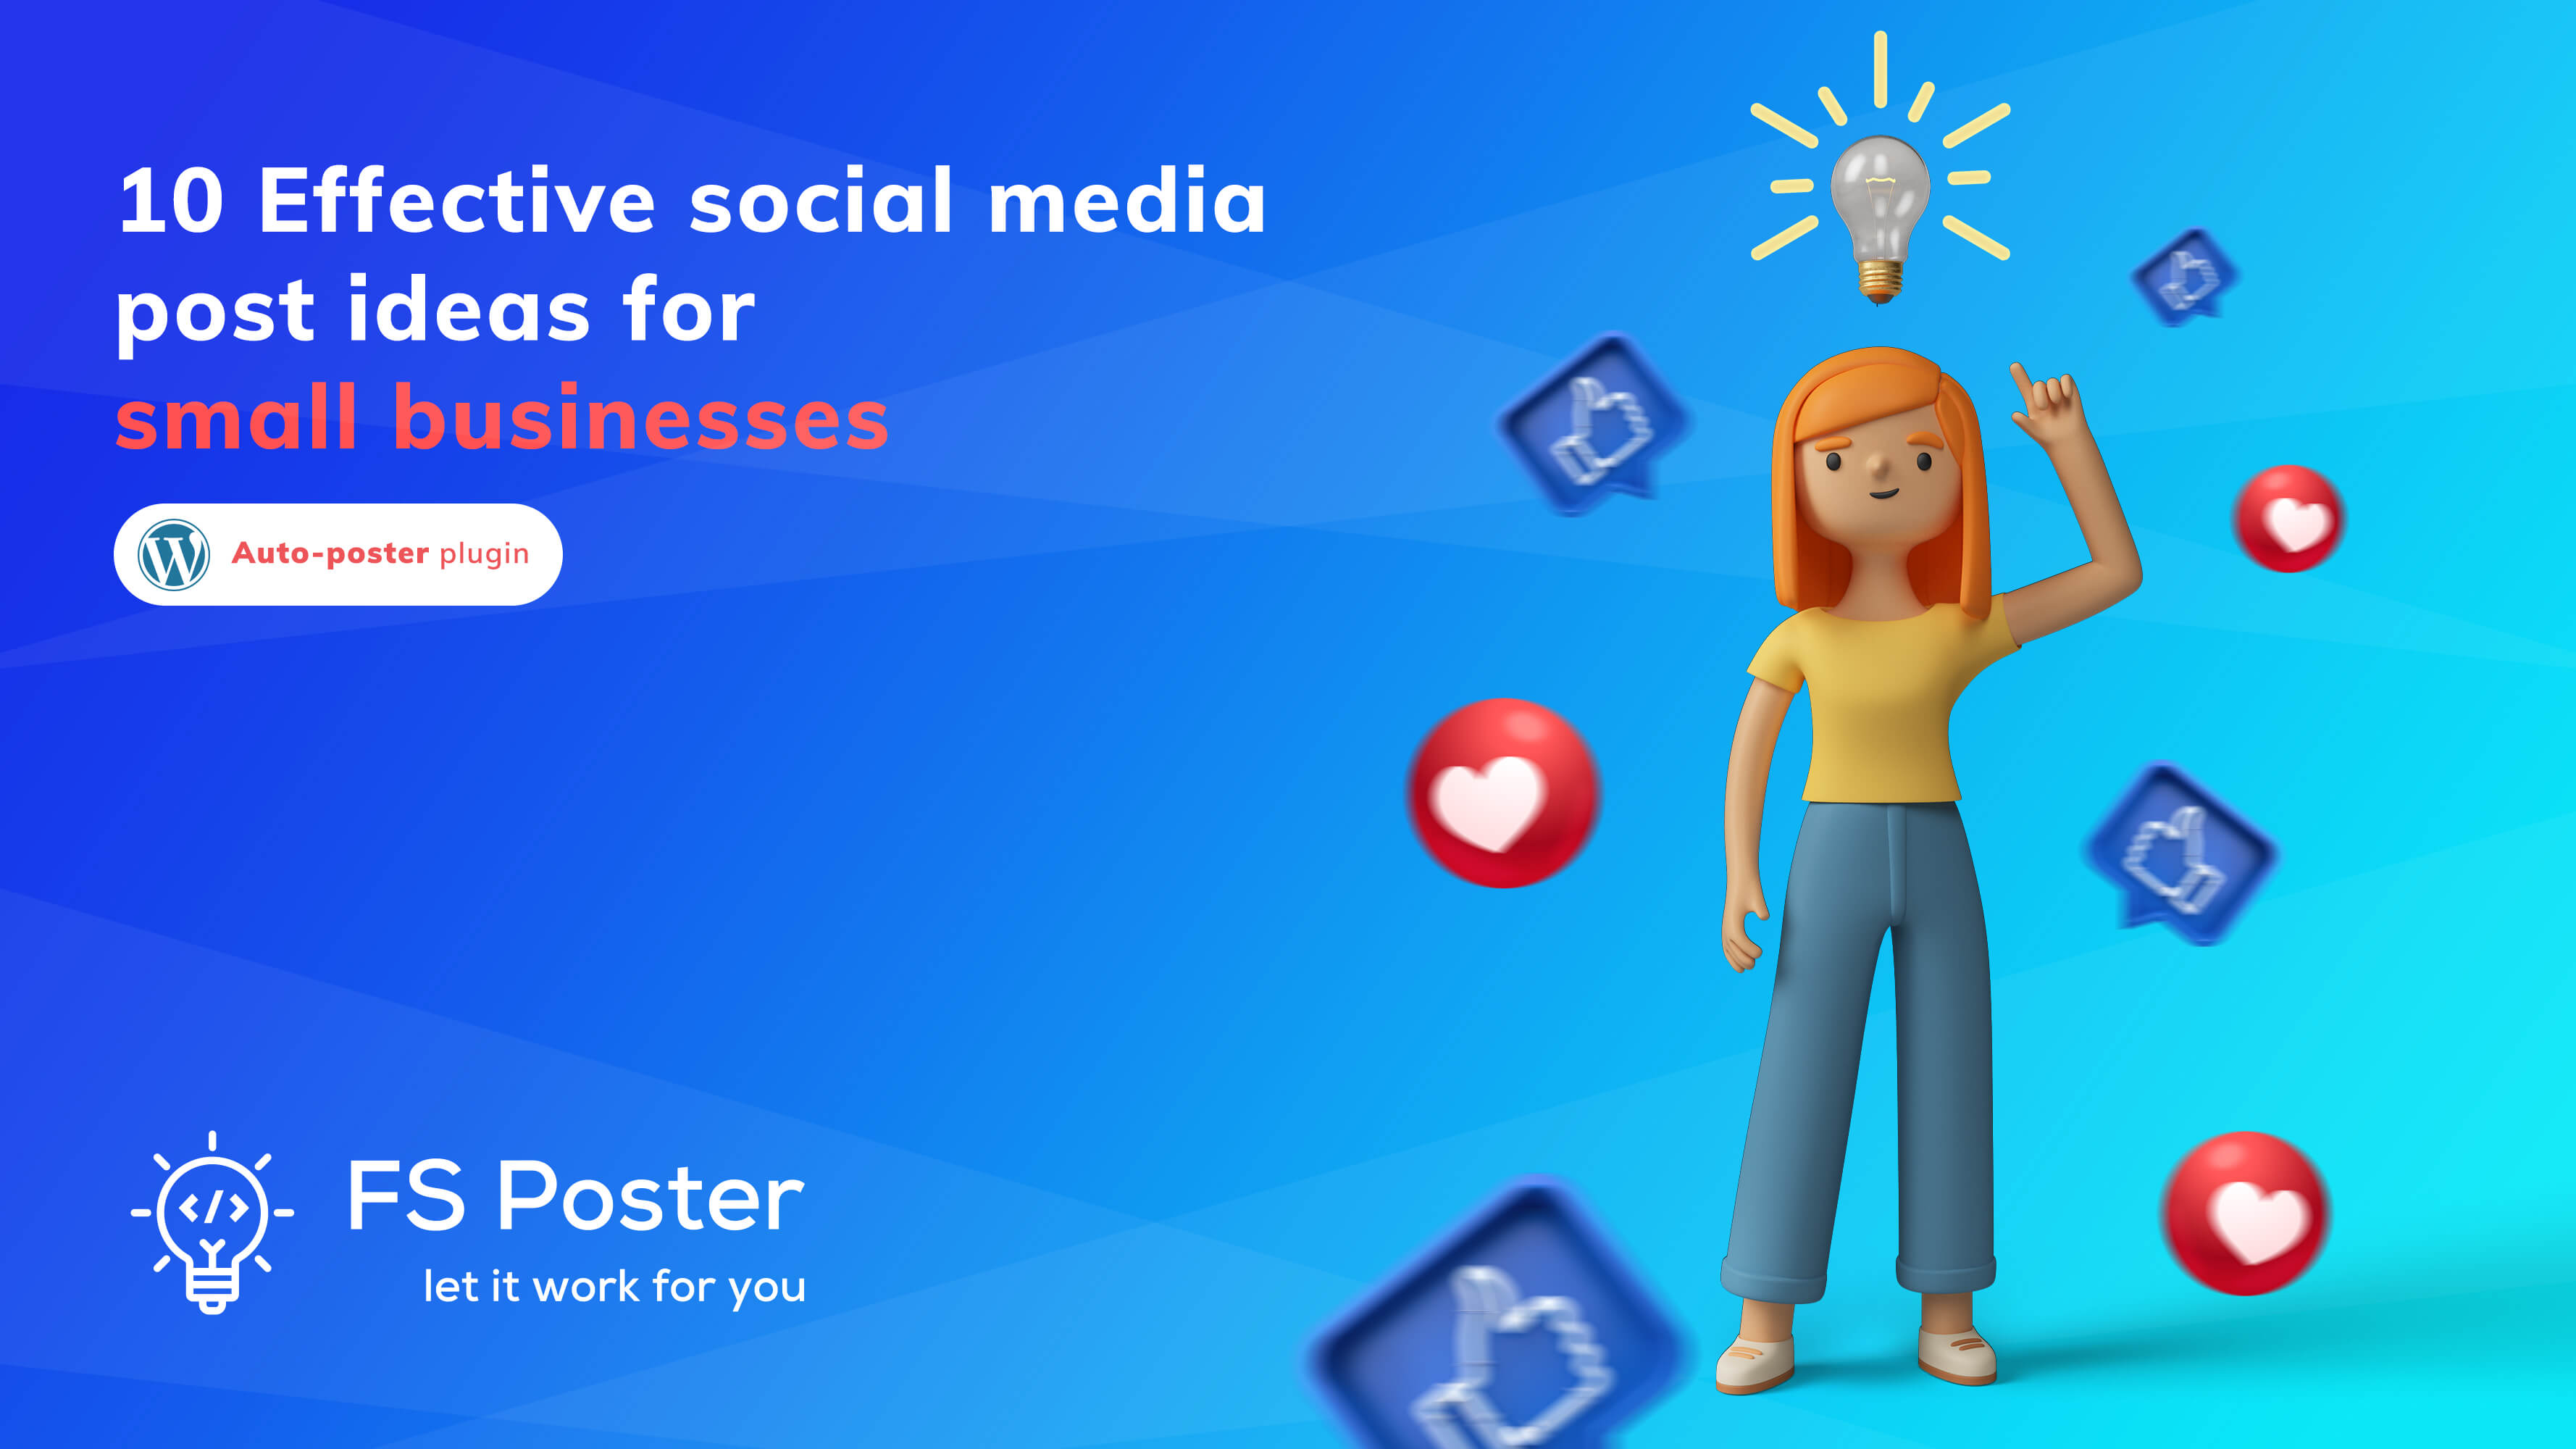 10 Effective social media post ideas for small businesses